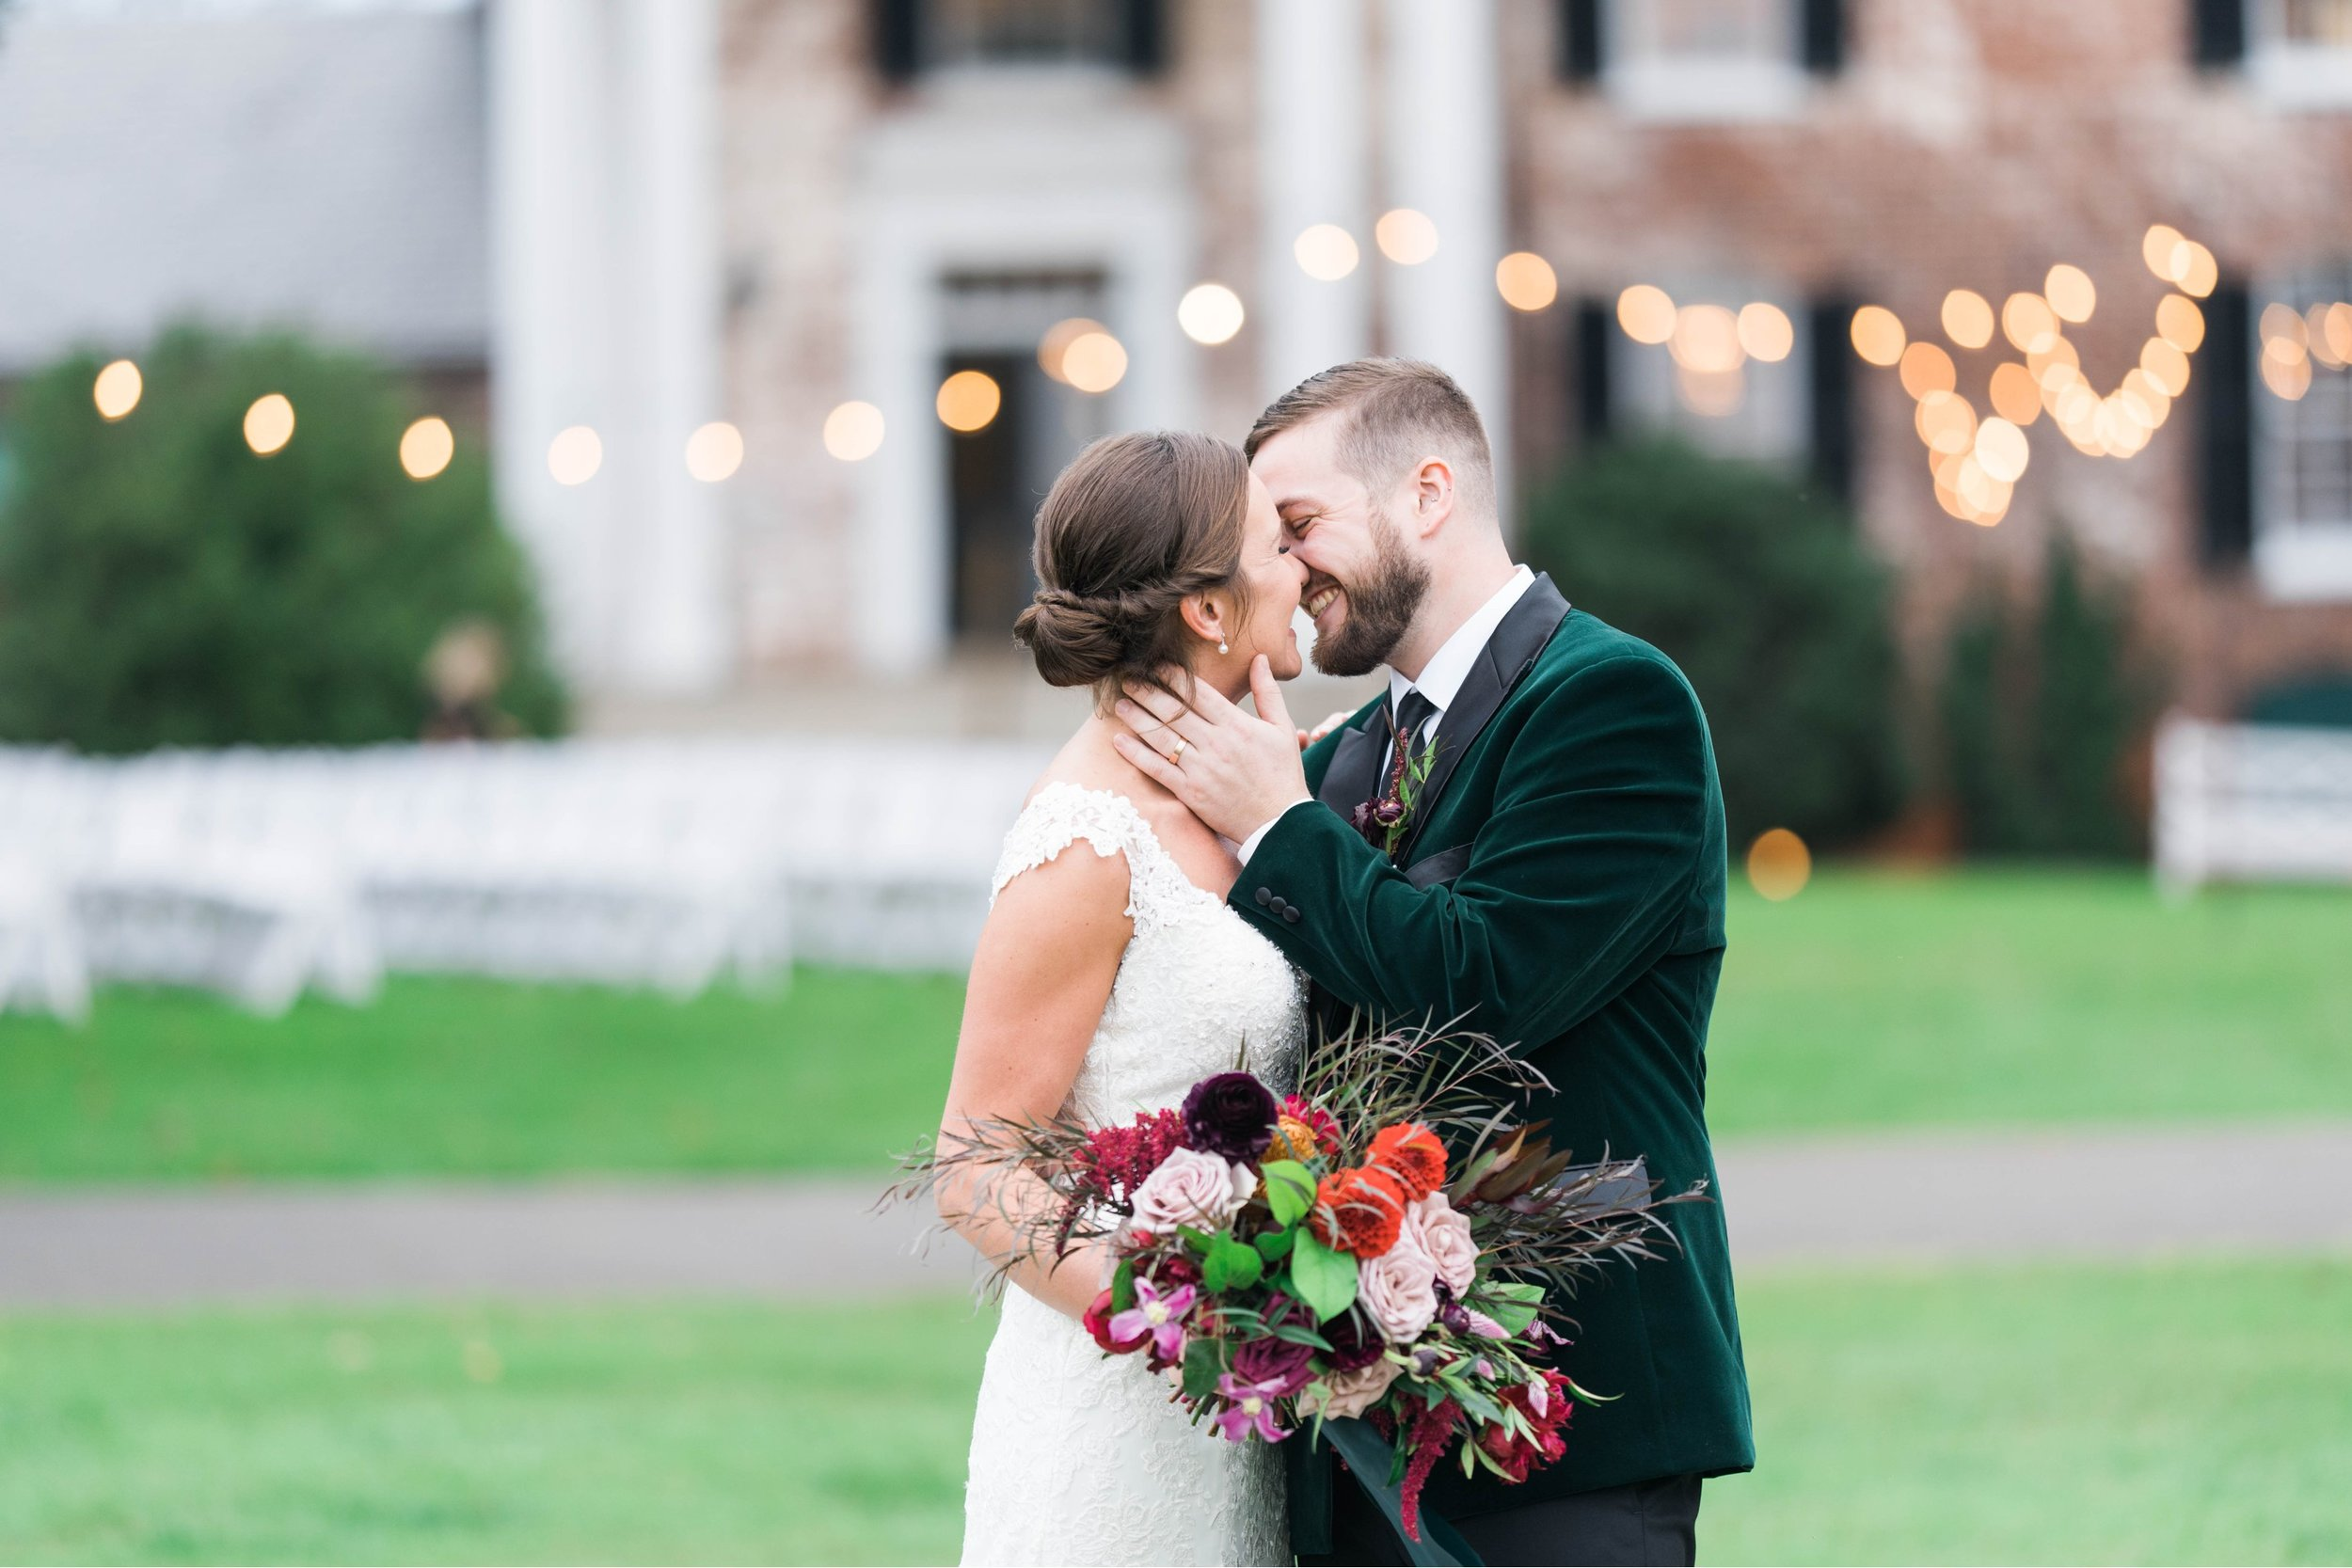 Gordan+Lauren_BoonsboroCountryClubWedding_Virginiaweddingphotographer_LynchburgVi 21.jpg